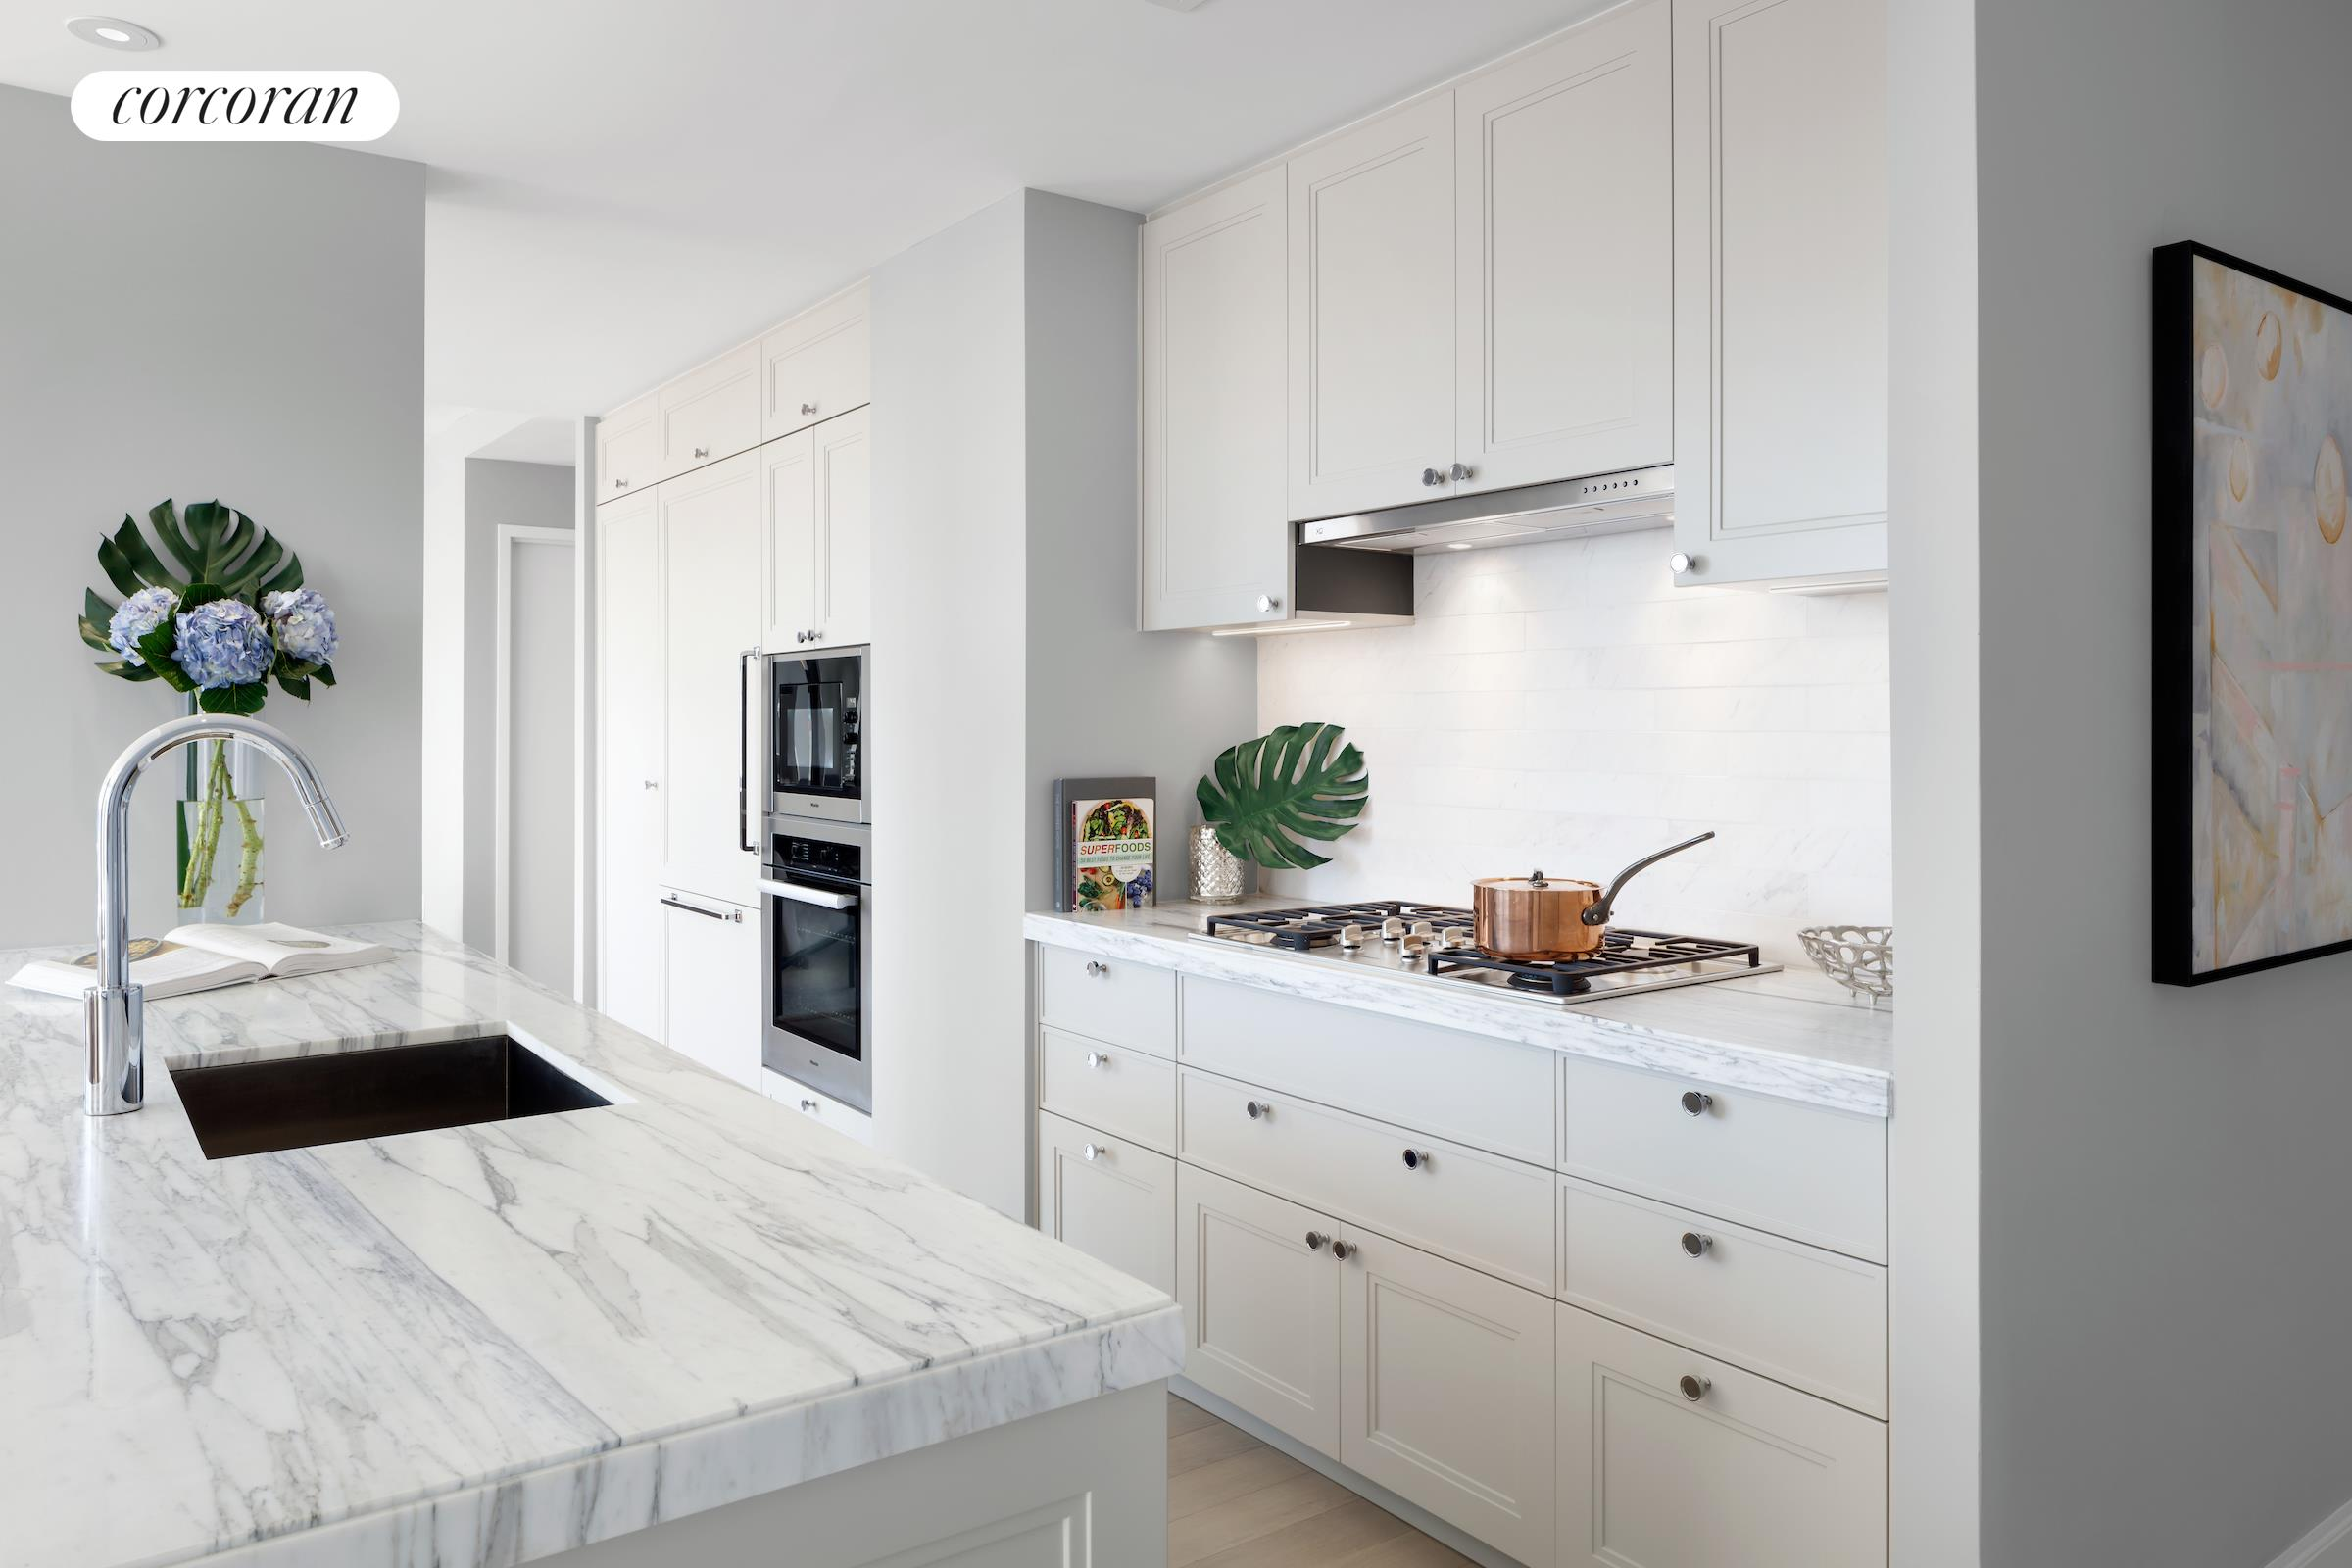 389 East 89th Street, 31A, Open Kitchen with Miele Appliances